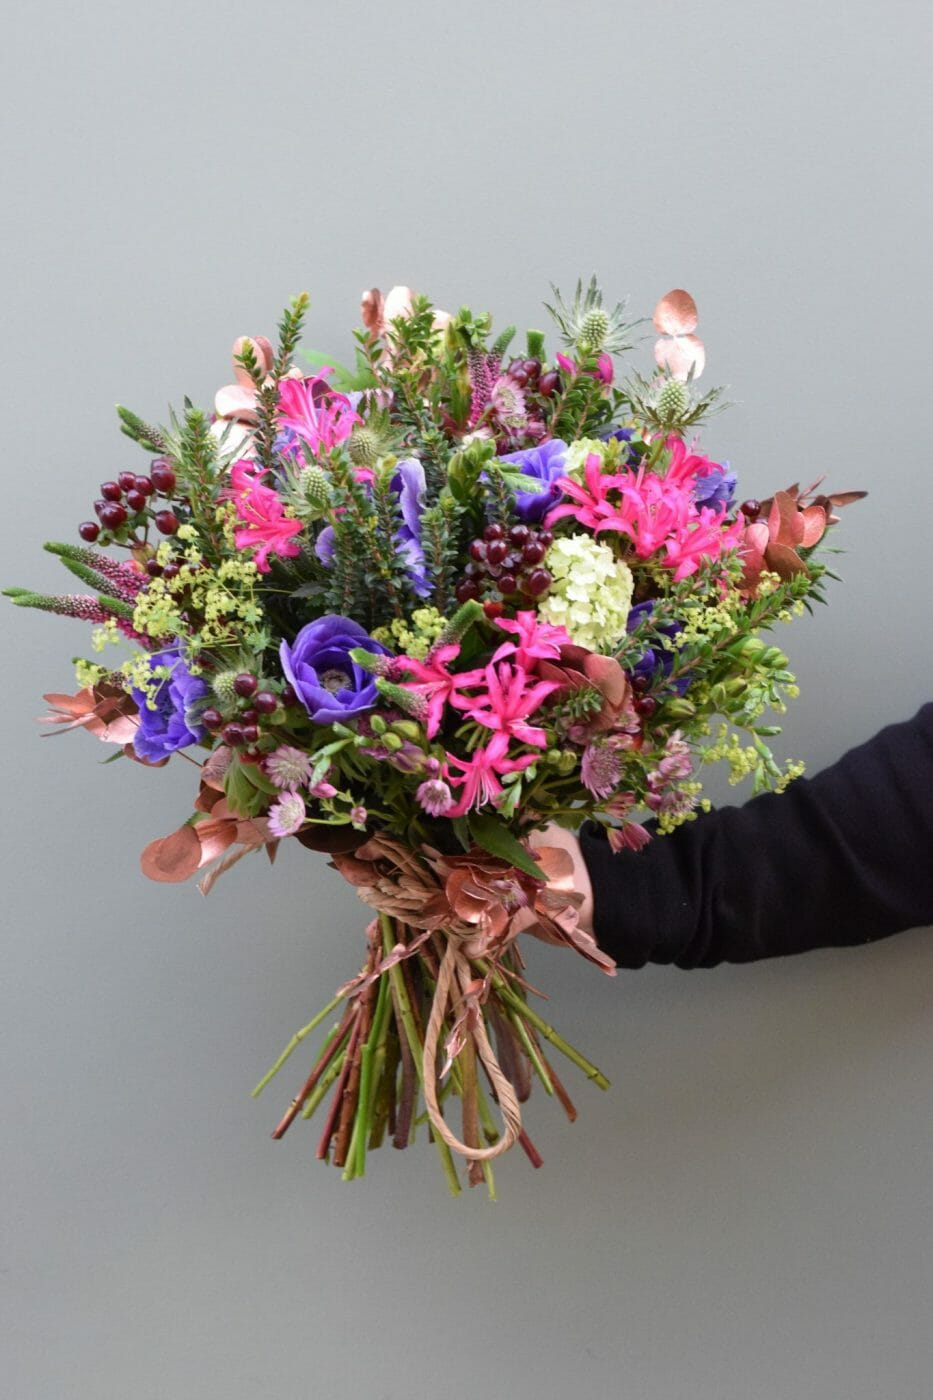 Christmas flowers of seasonal greens and jewel colours available from Kensington Flowers London